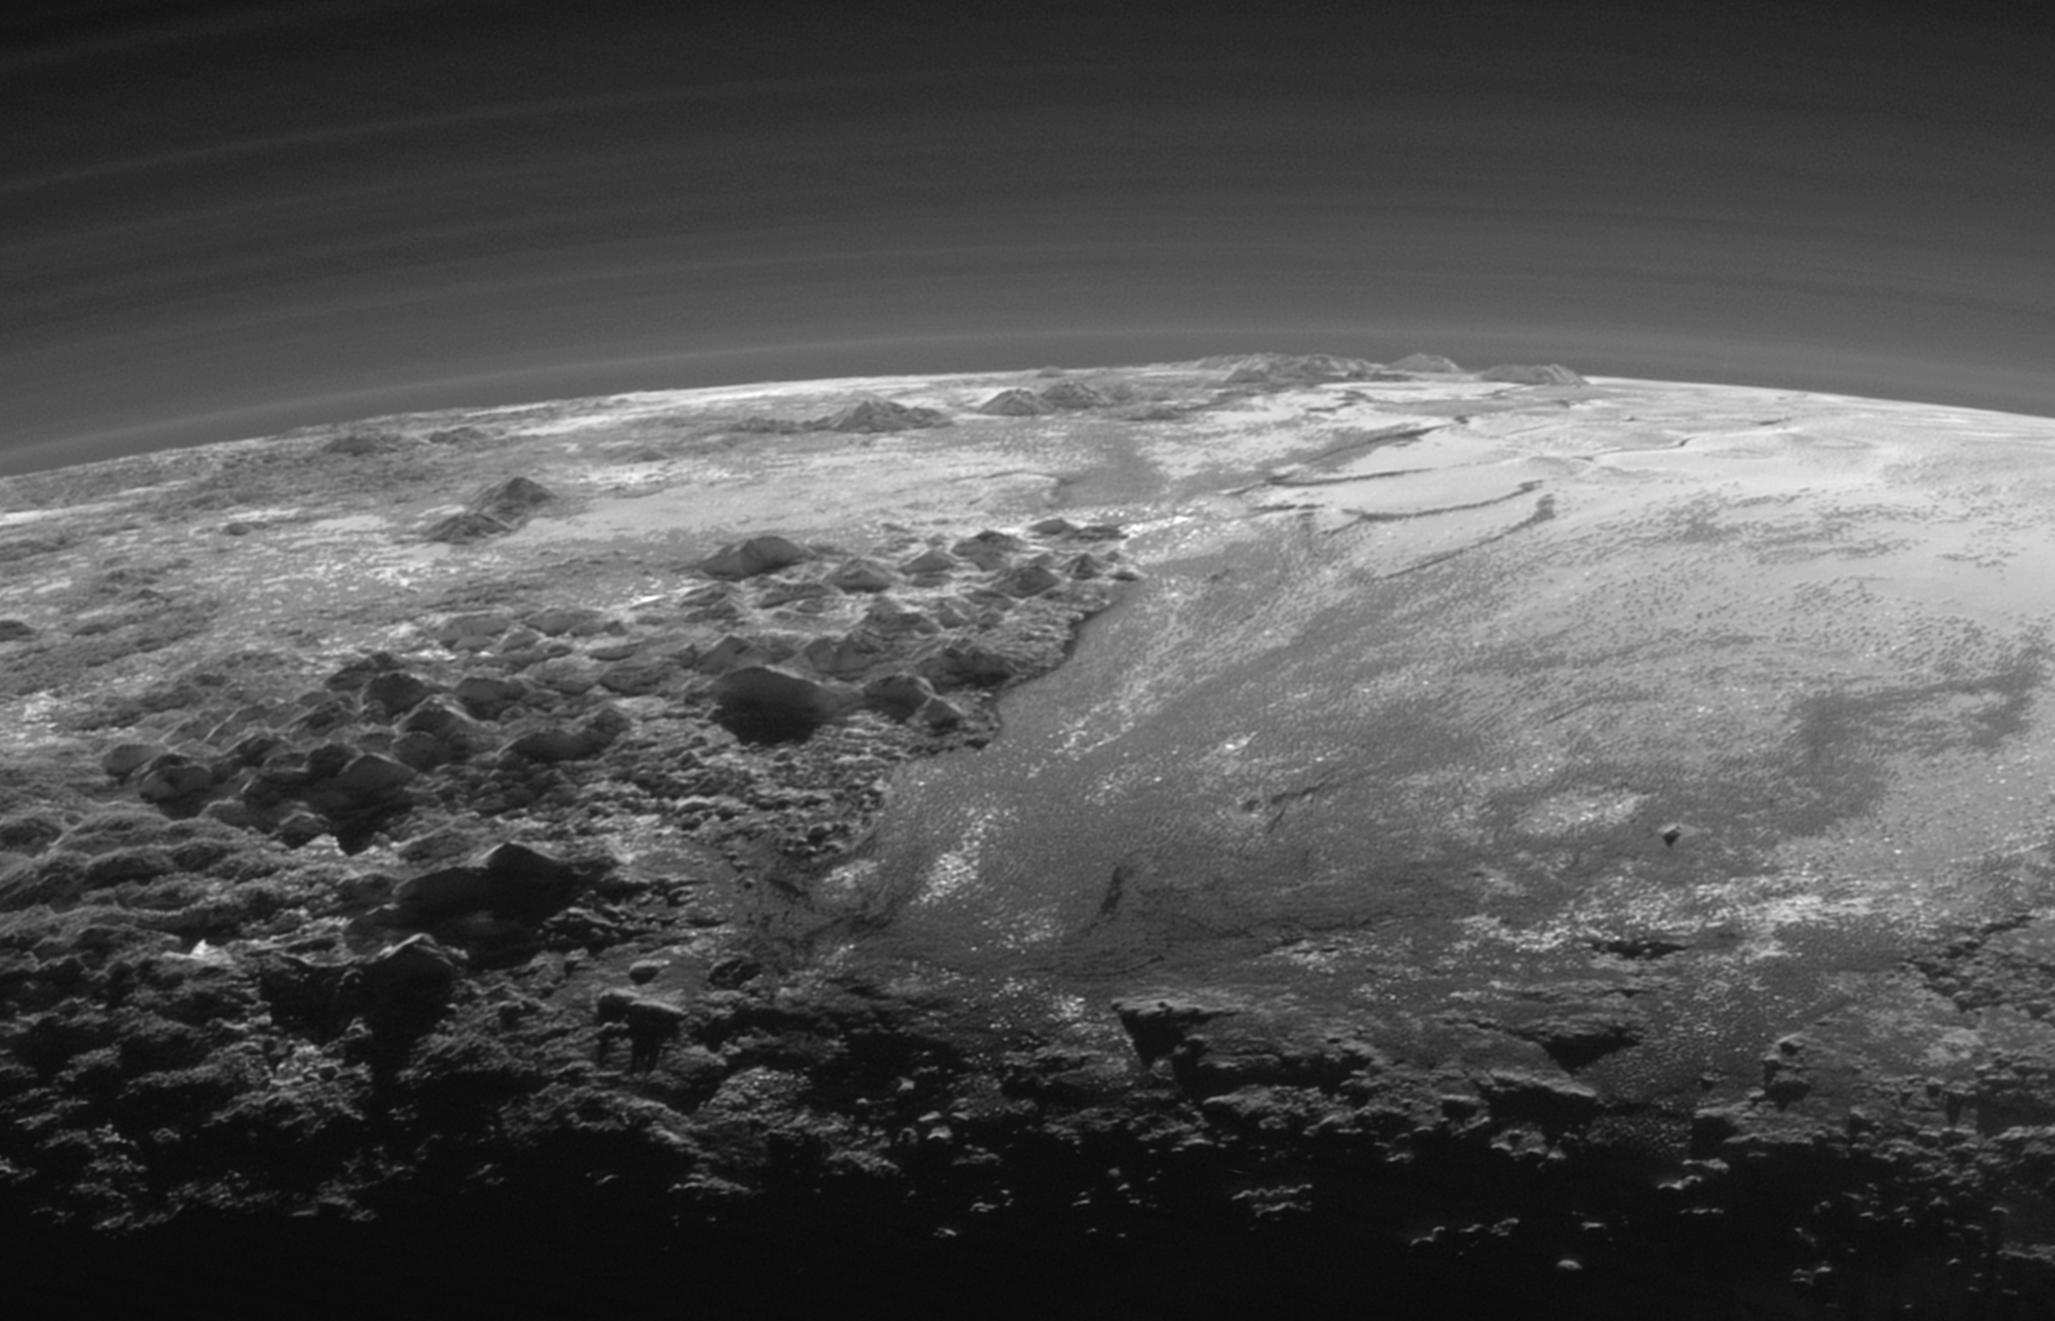 Extraterrestrial Skies Wikipedia 451plutosolarsystemdiagramjpg Pluto Norgay Montes Left Foreground Hillary Skyline Sputnik Planitia Right Near Sunset View Includes Several Layers Of Atmospheric